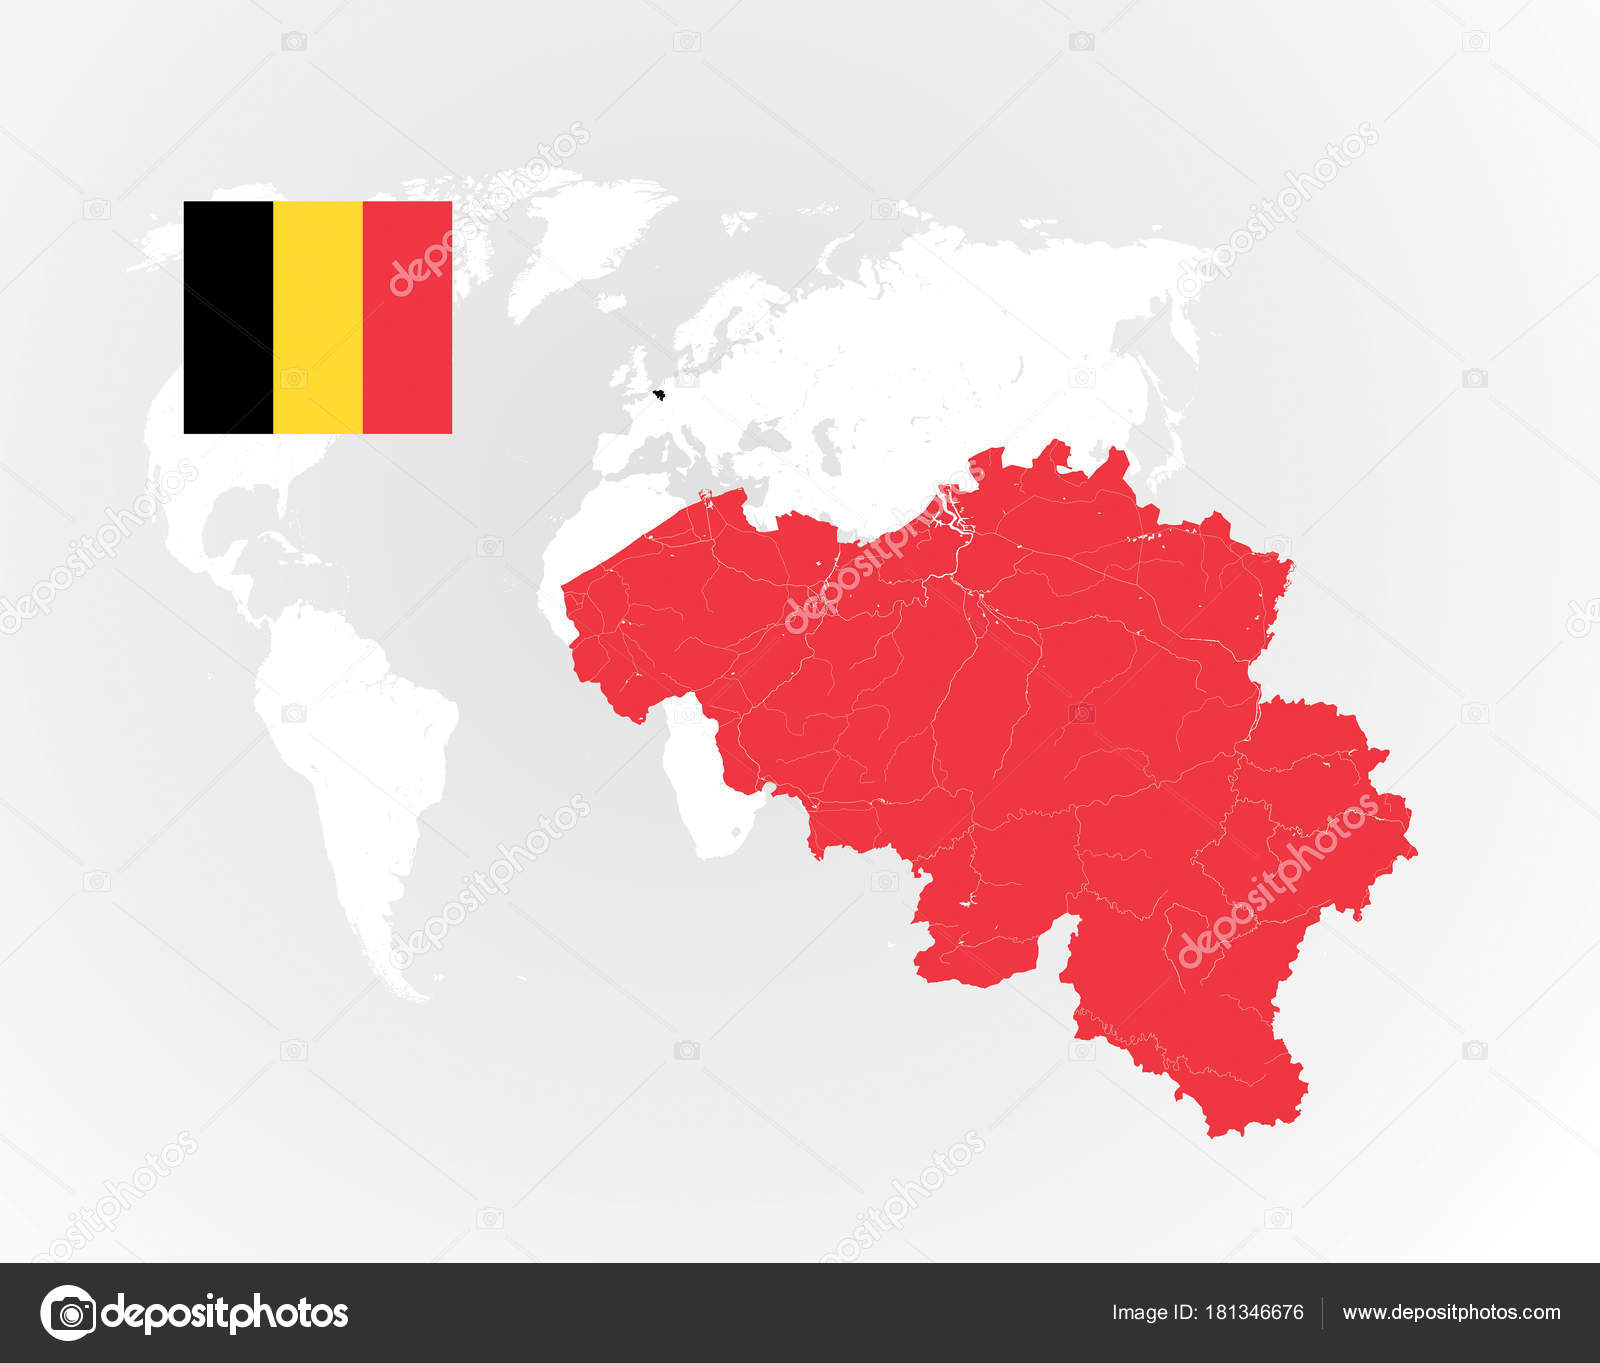 map of belgium with rivers and lakes national flag of belgium and world map as